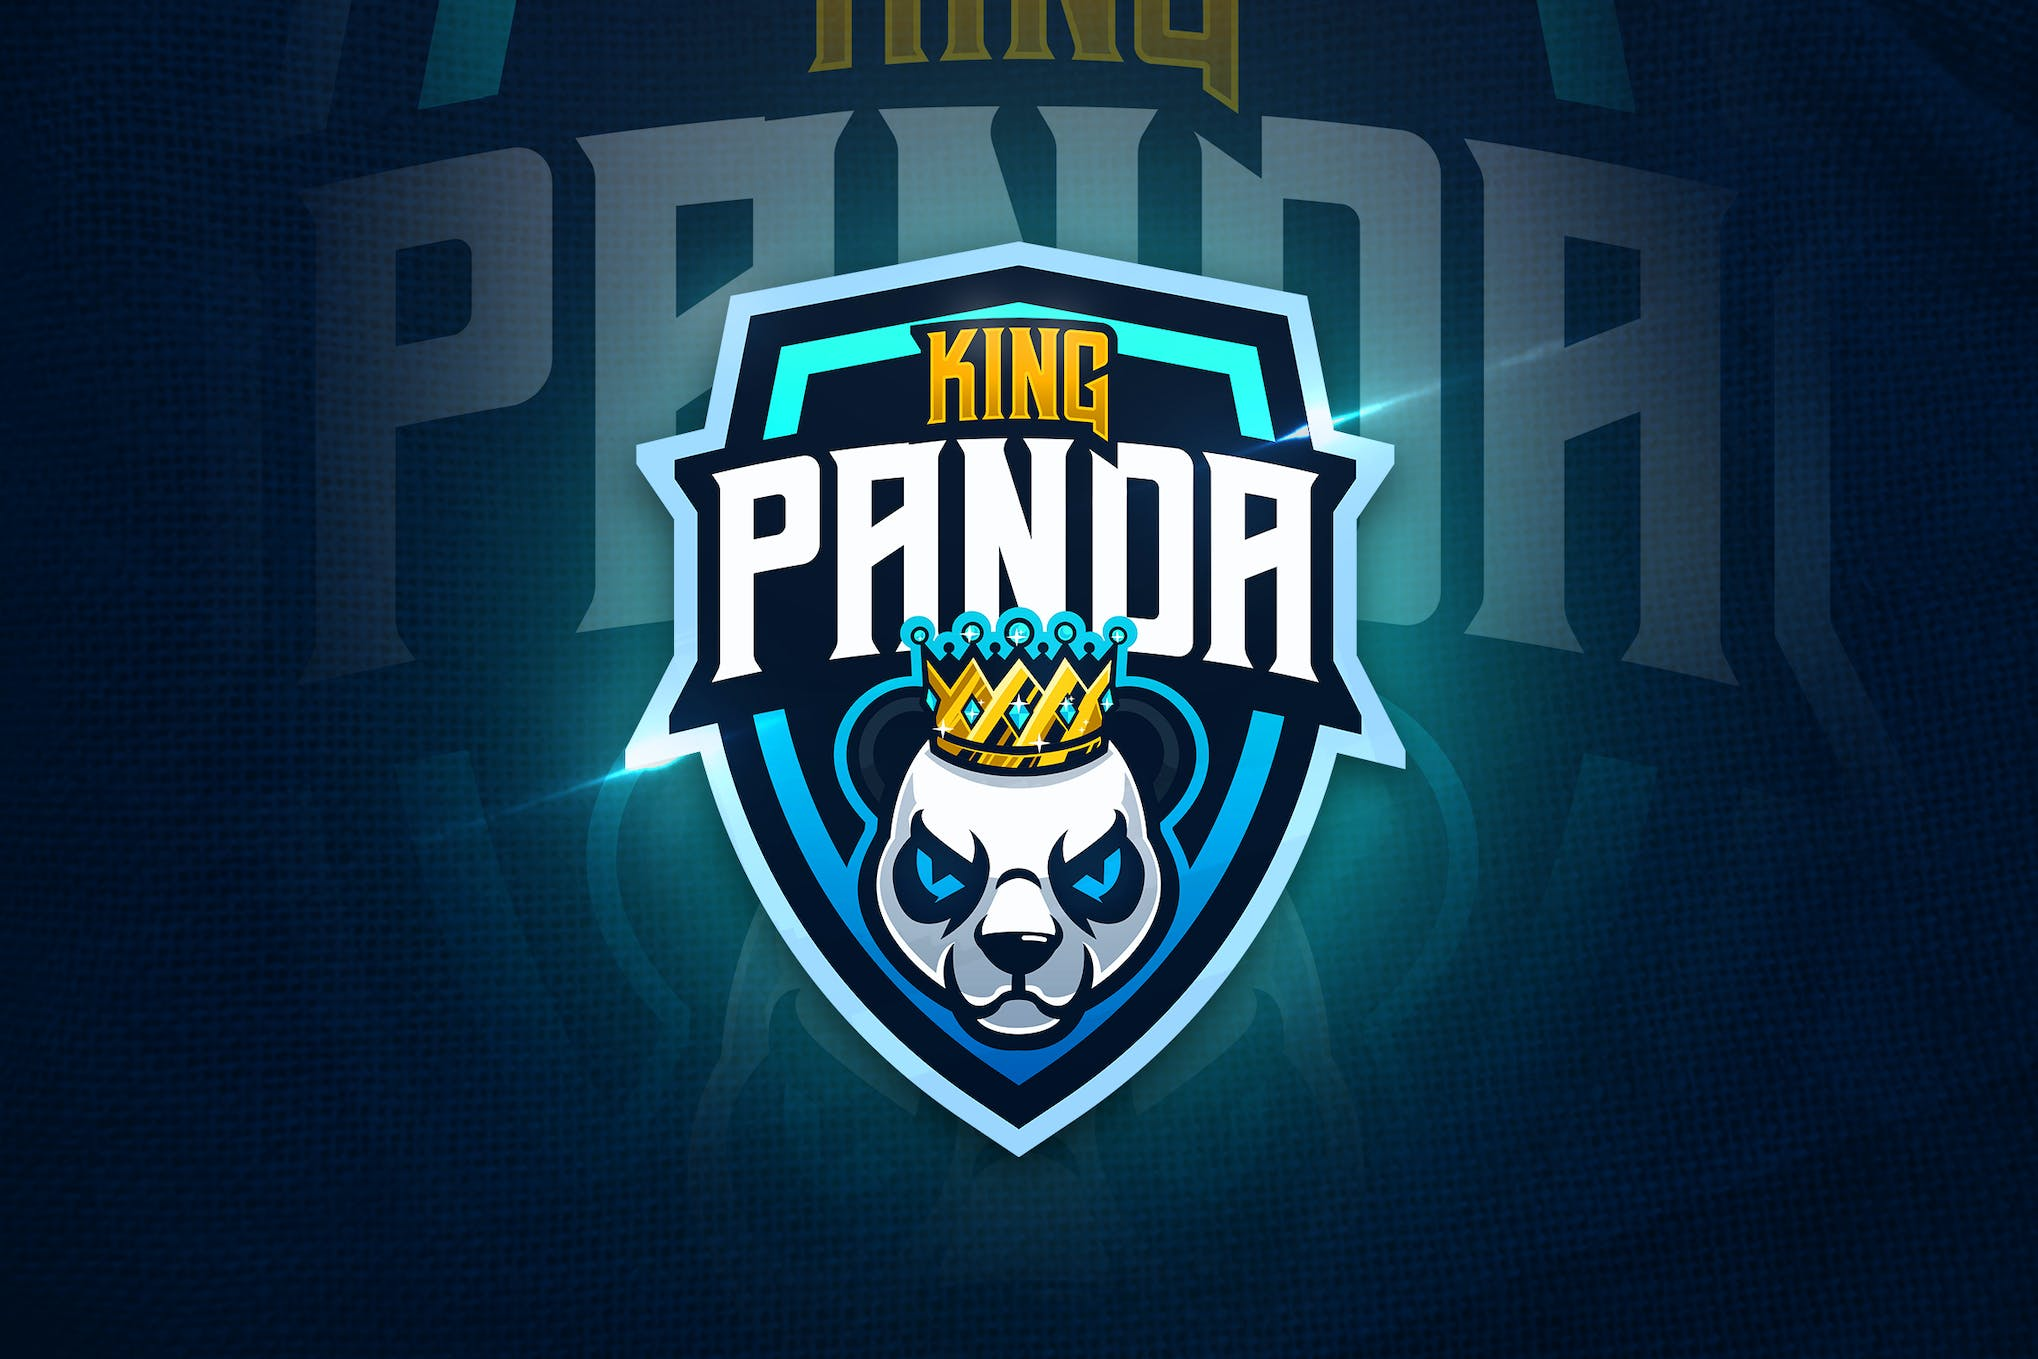 King Panda Mascot Esport Logo By Aqrstudio On Envato Elements